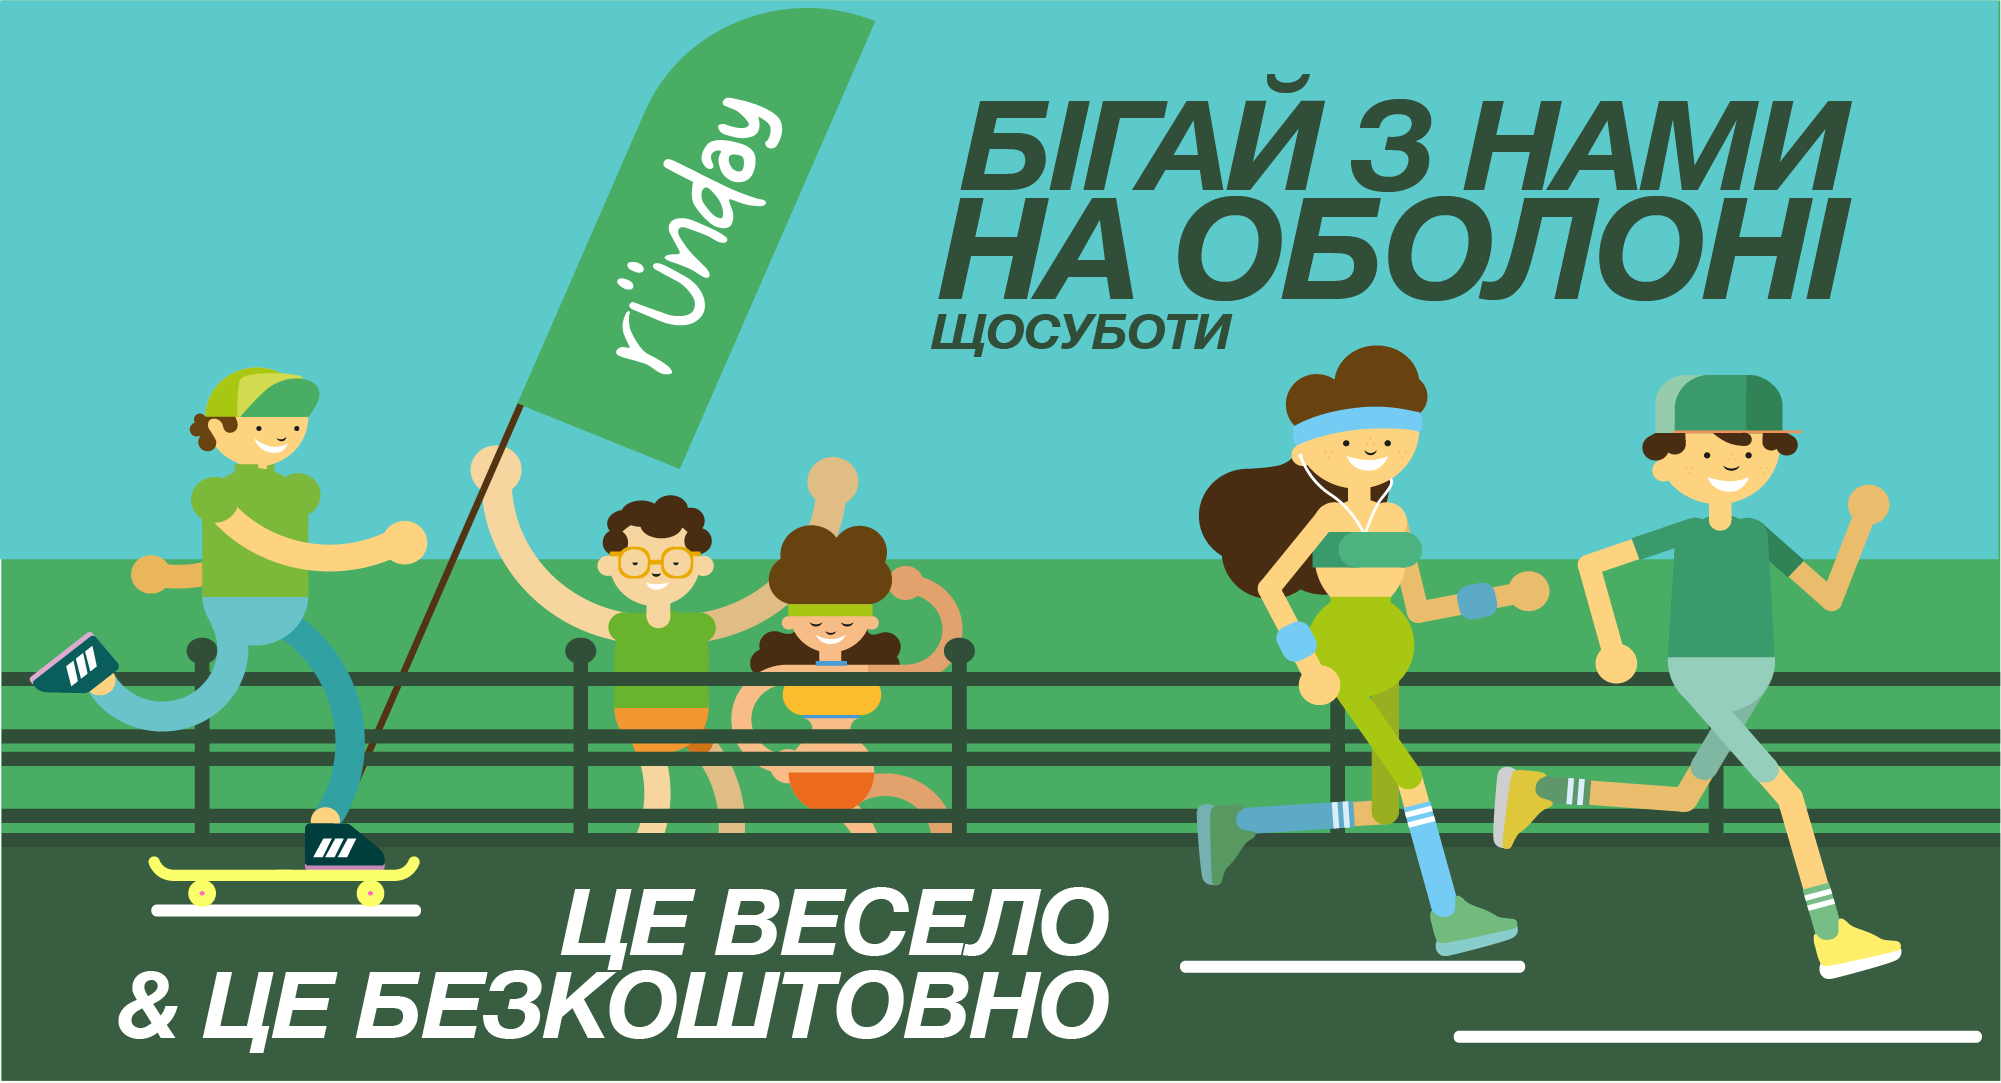 Забіг на 5км Obolon runday. November 25